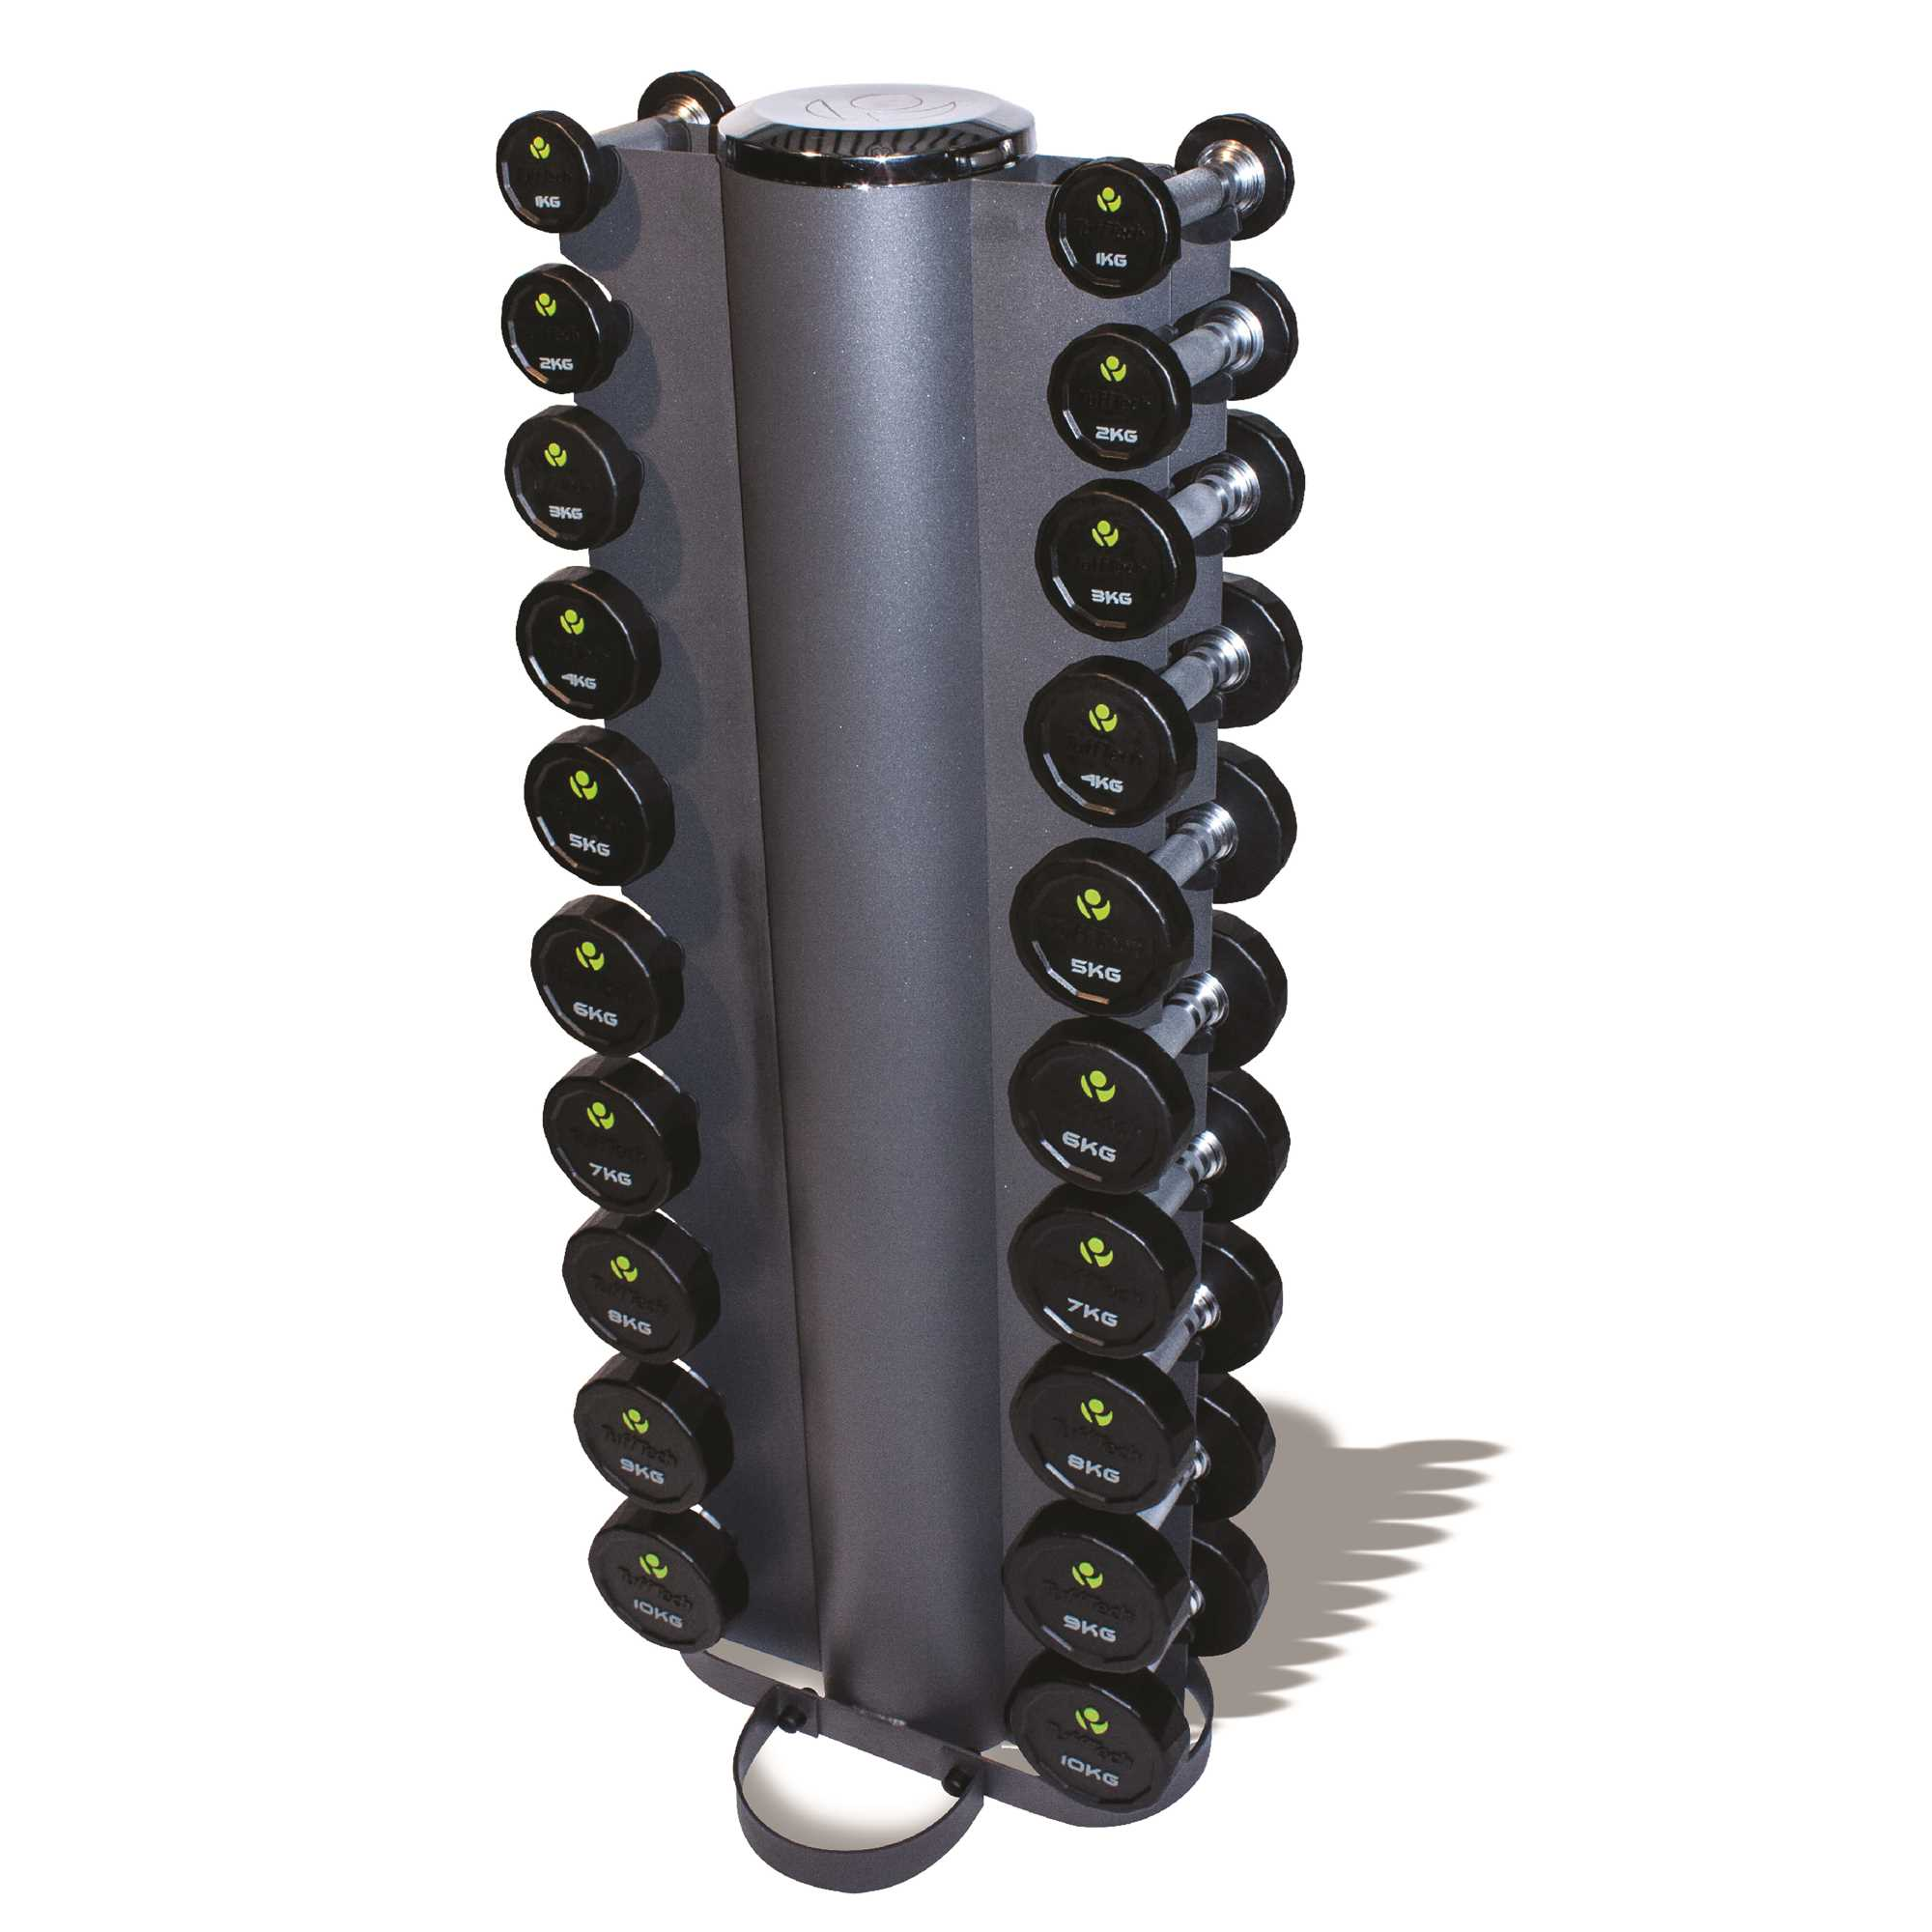 1kg - 10kg Rubber Dumbbell Set & Vertical Rack